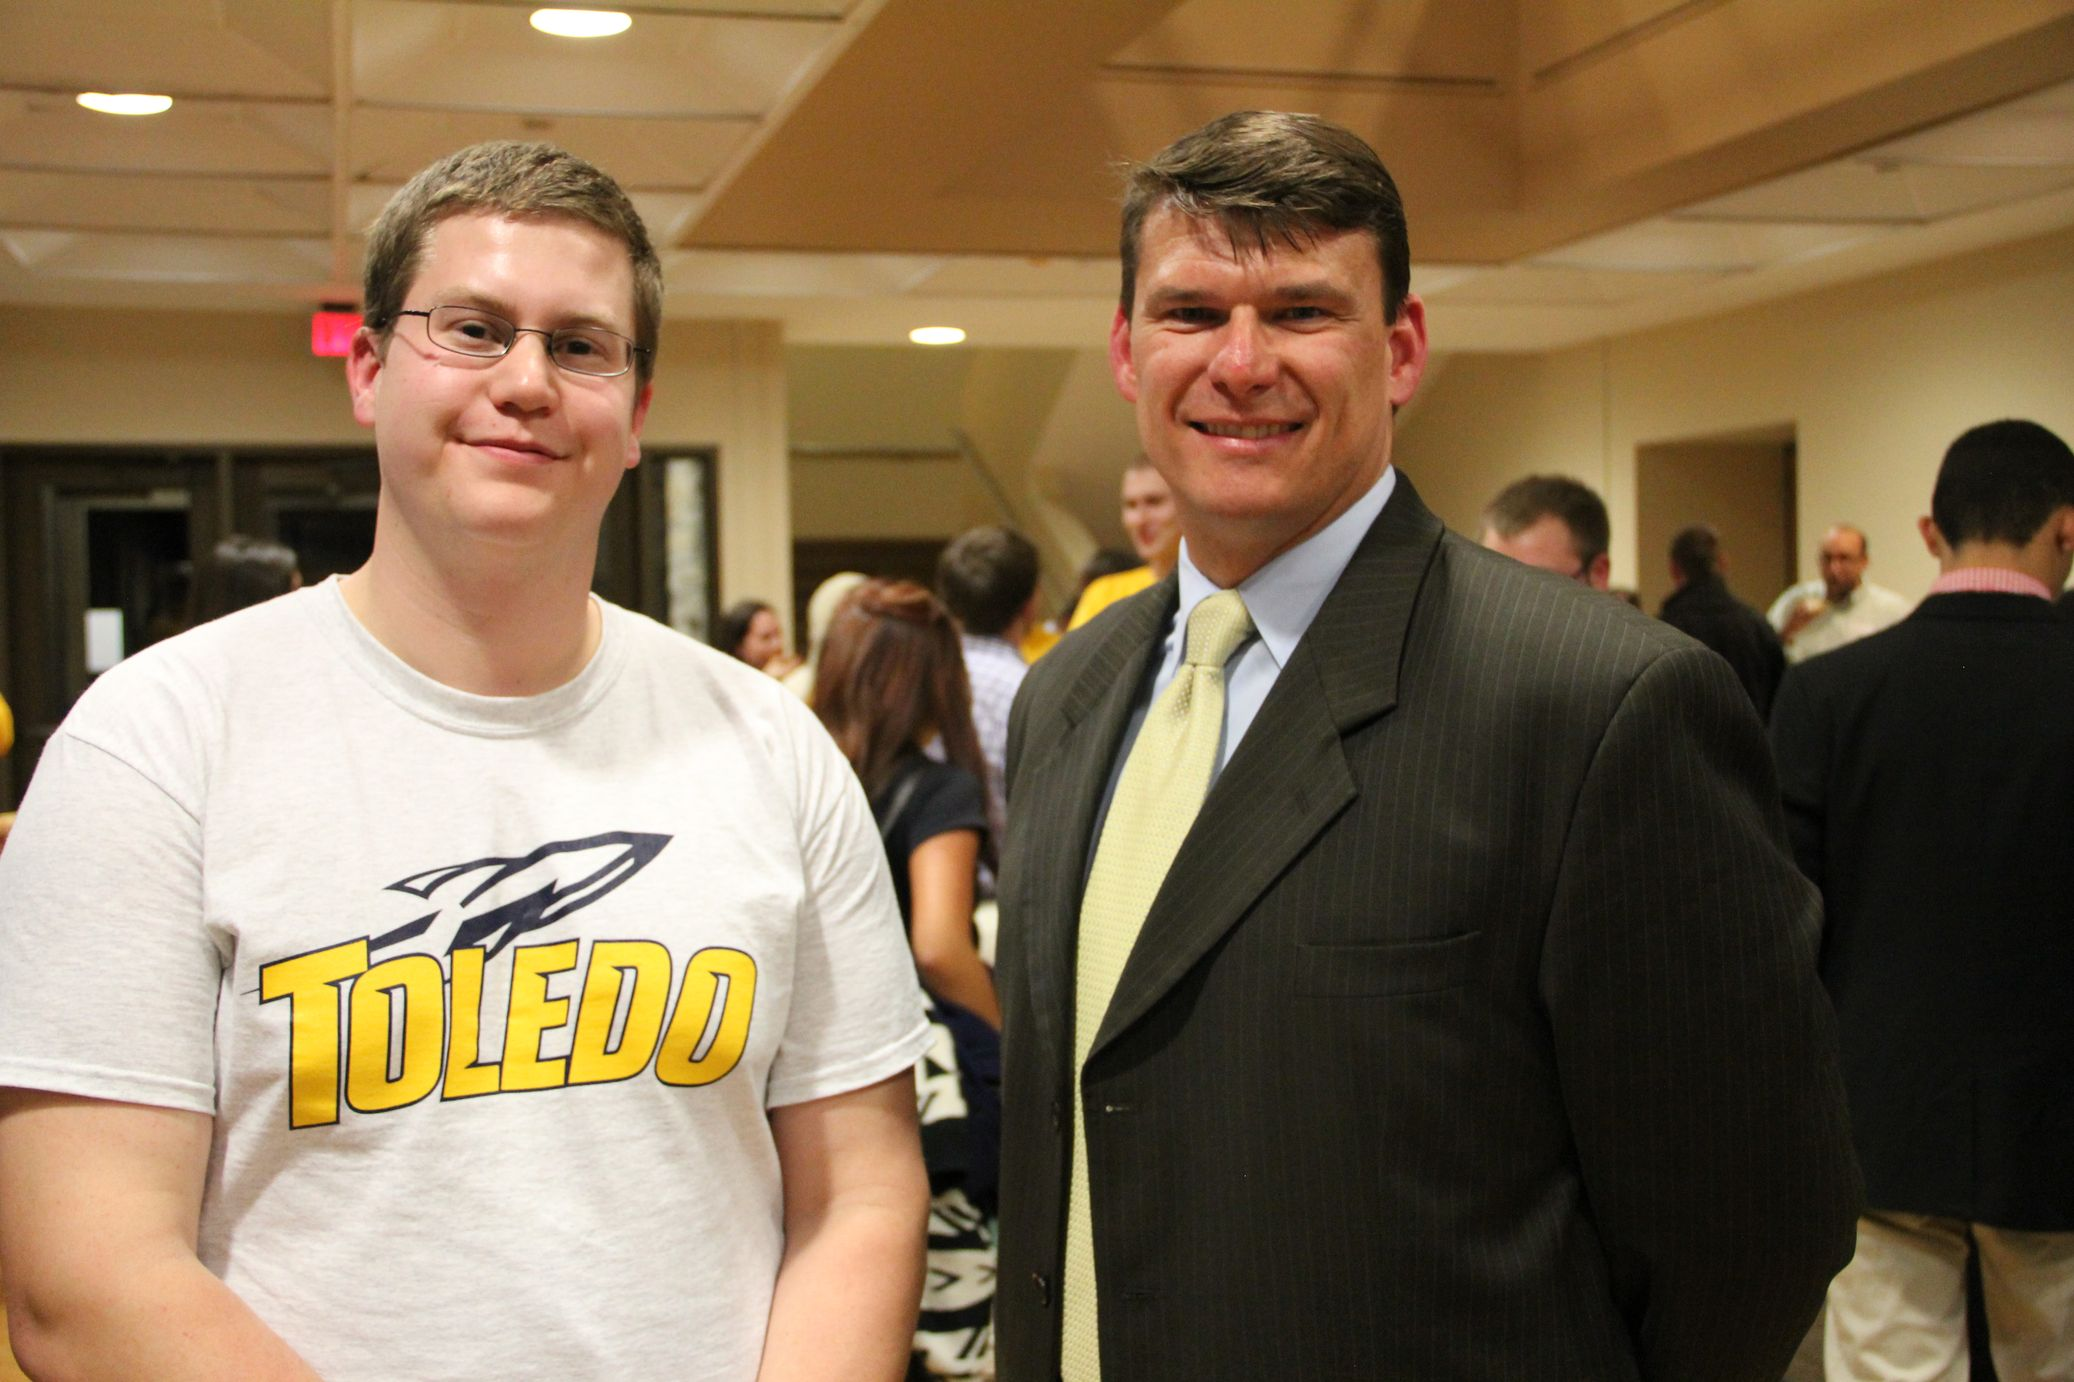 UT College of Business hosted Meet the Accountants program